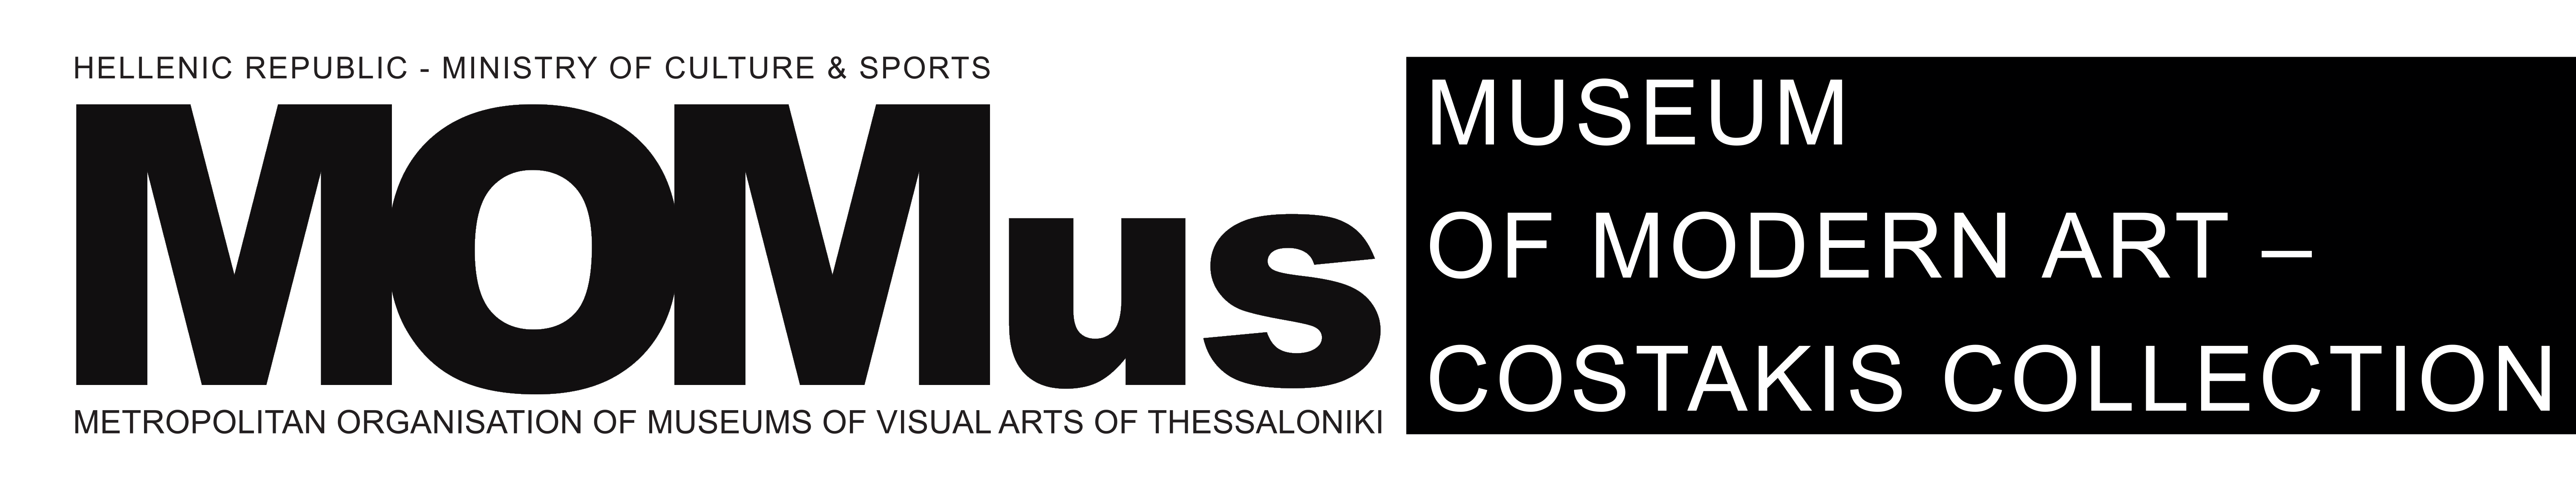 MOMus-Museum of Modern Art-Costakis Collection